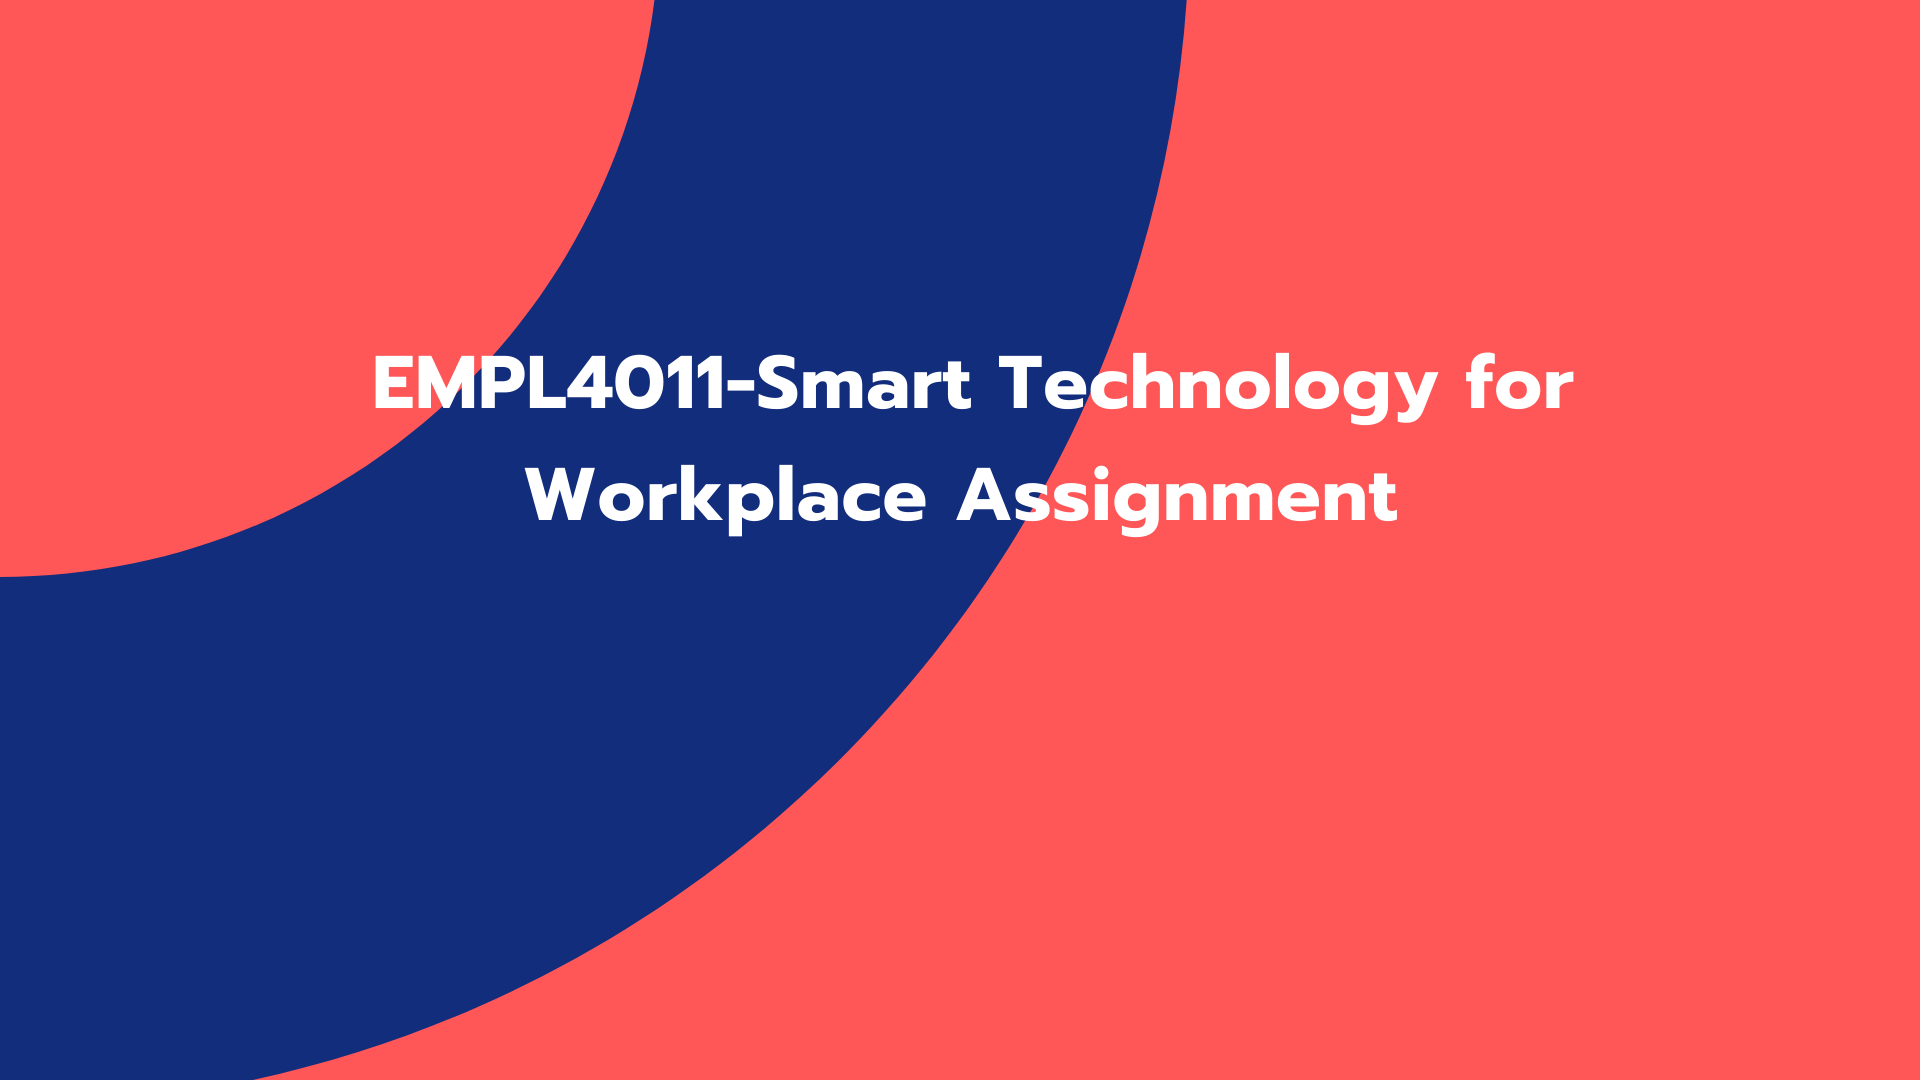 EMPL4011-Smart Technology for Workplace Assignment